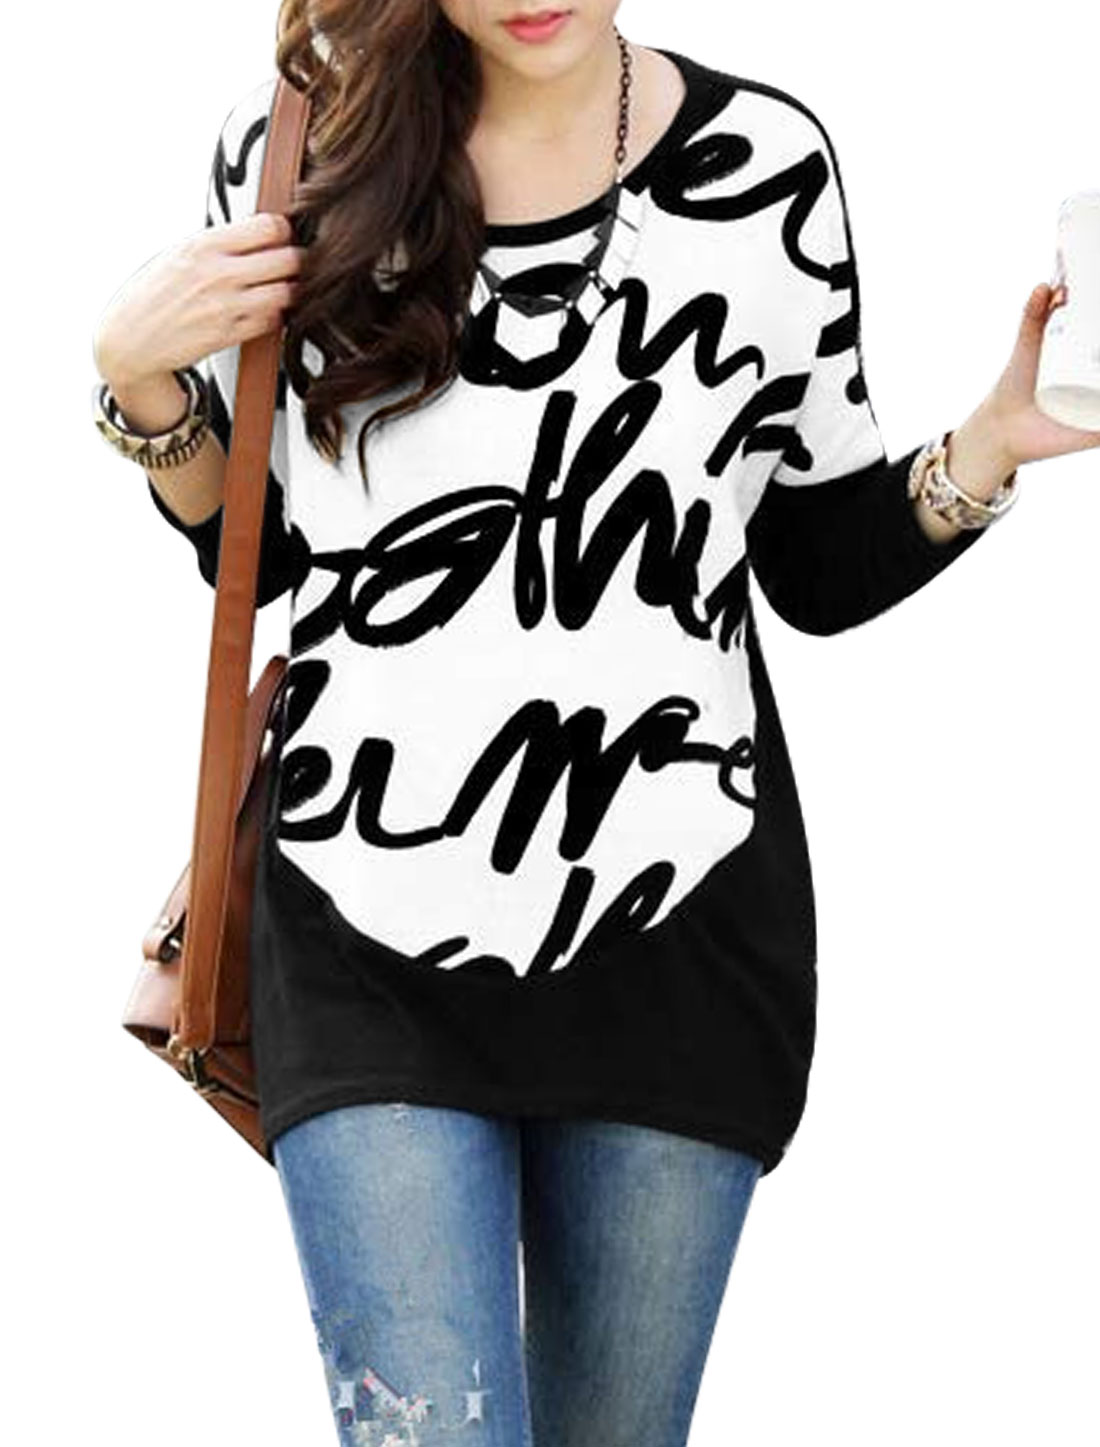 Ladies Black White Batwing Sleeves Round Neck Fashion Tunic Top S